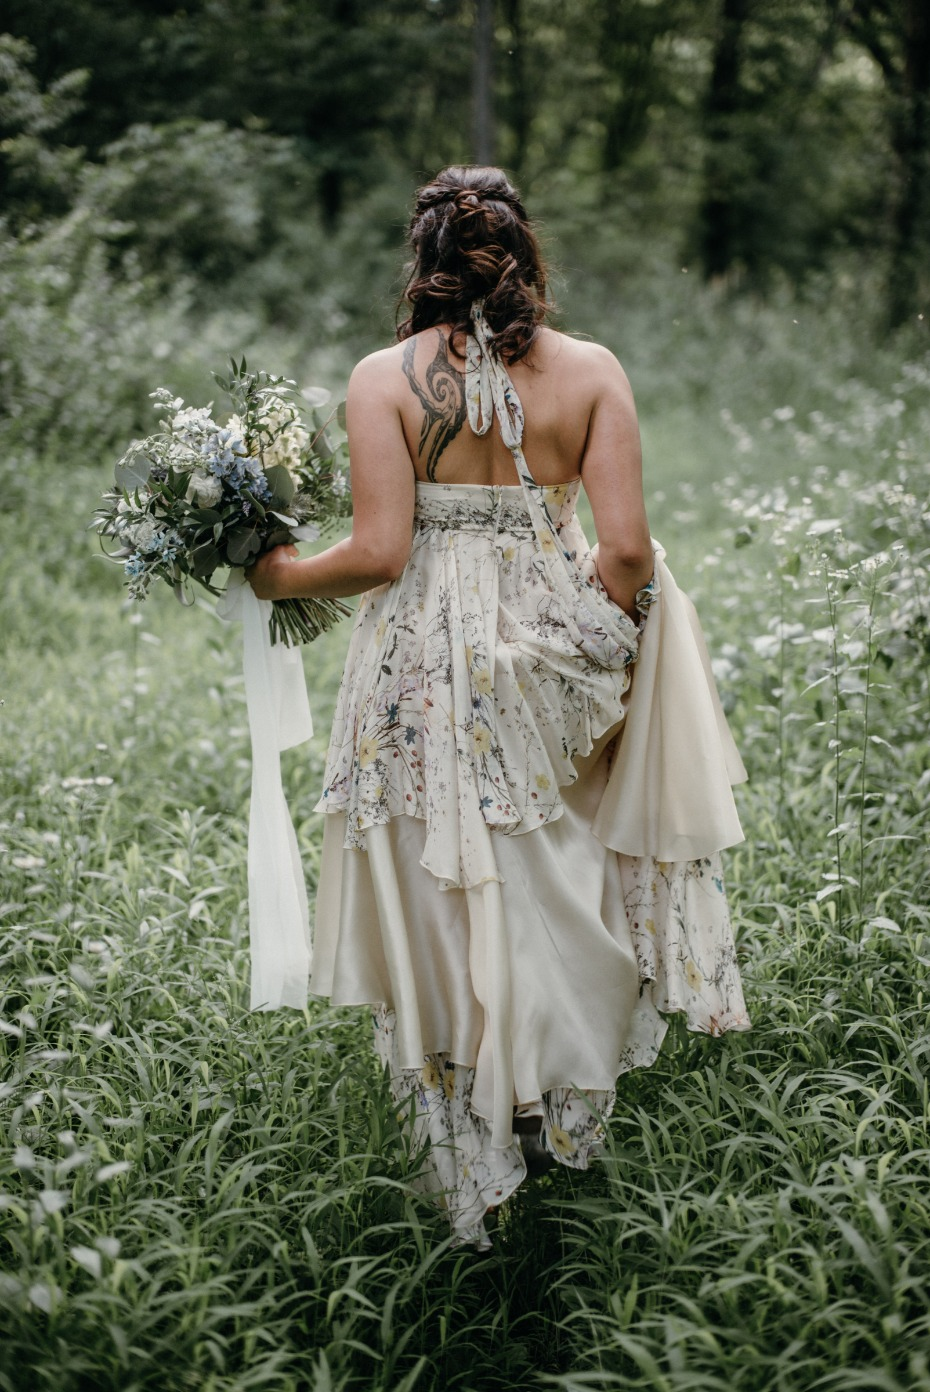 Non-traditional wedding dress for the outdoorsy bride